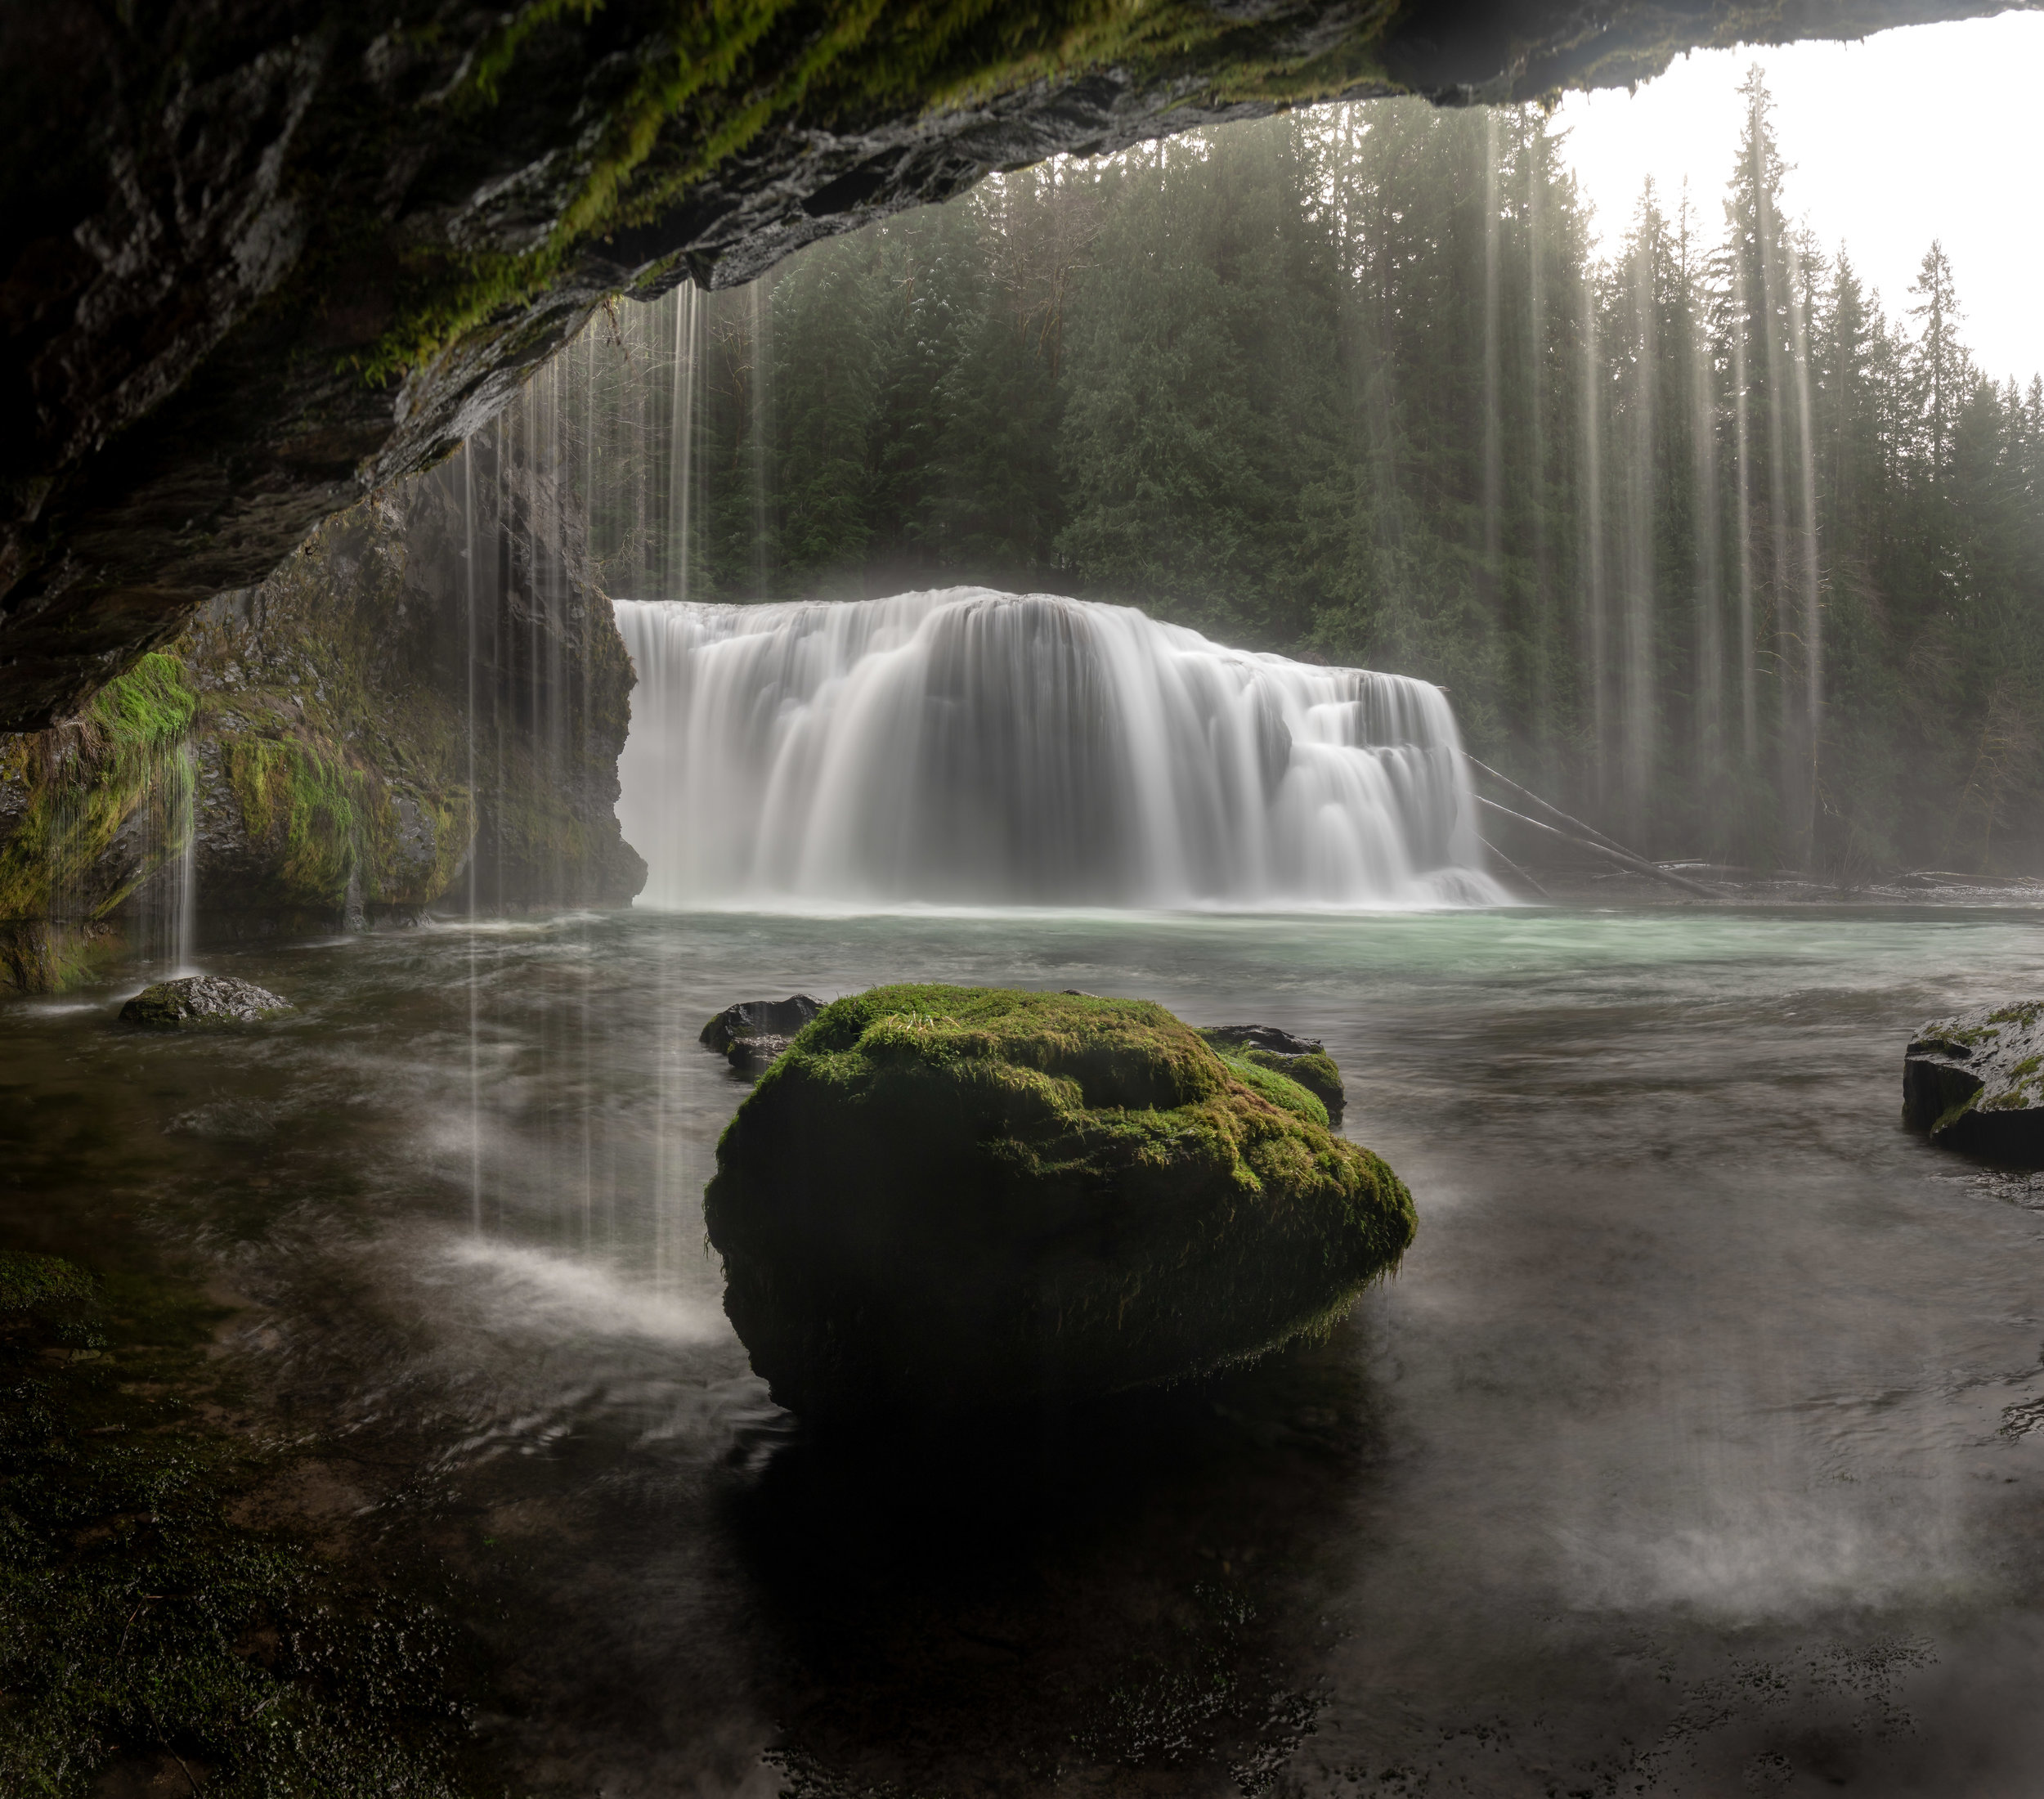 evening spring time scene at Lower Lewis River Falls — Gifford Pinchot National Forest